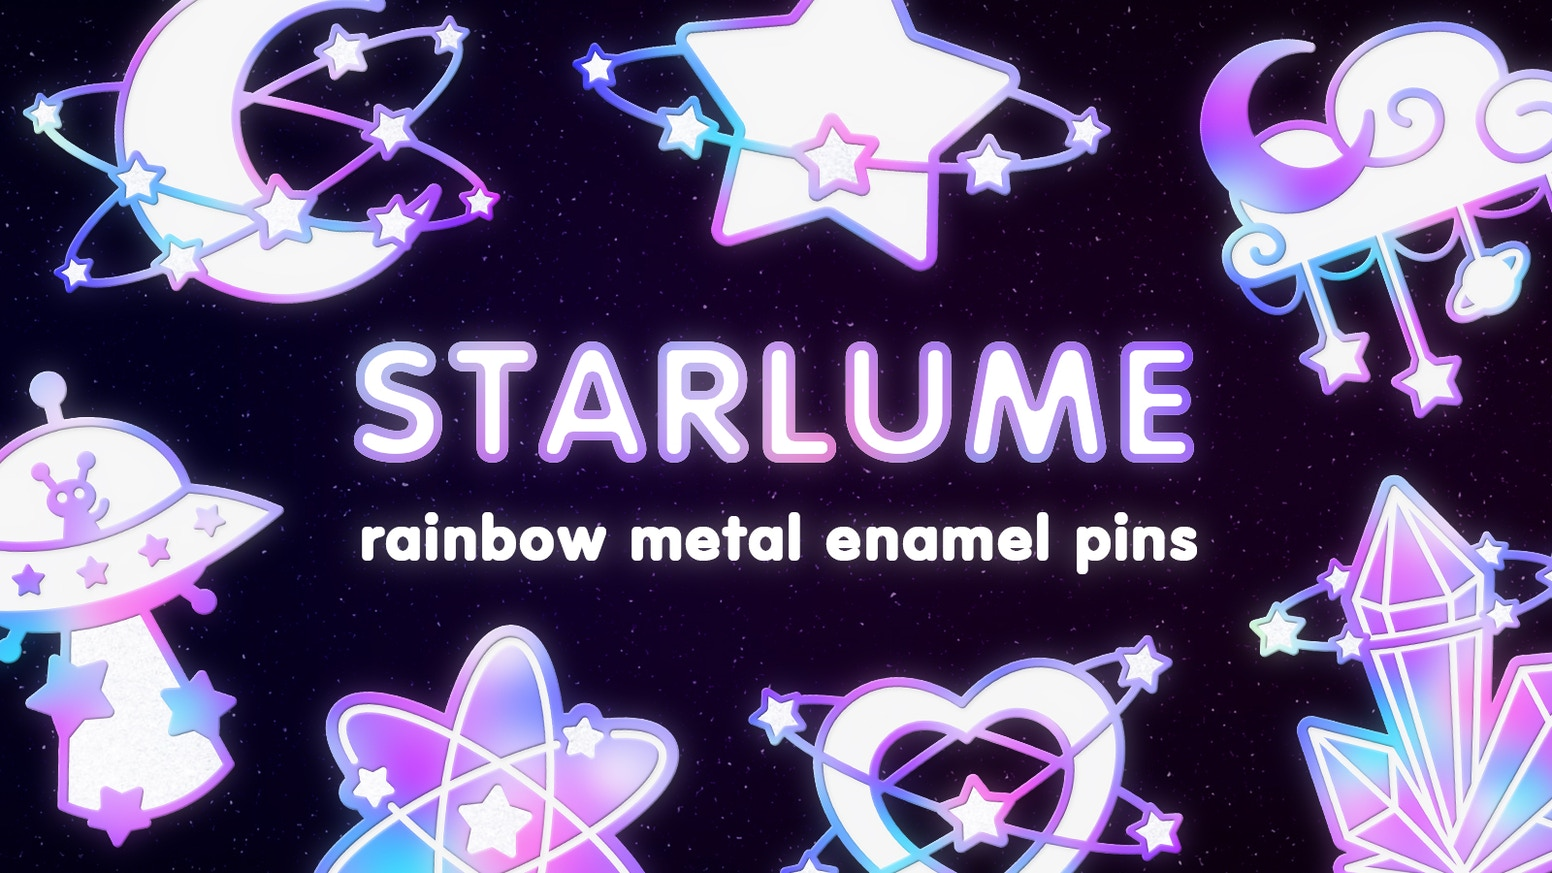 Soft enamel rainbow metal pins with a magic and space aesthetic~★!